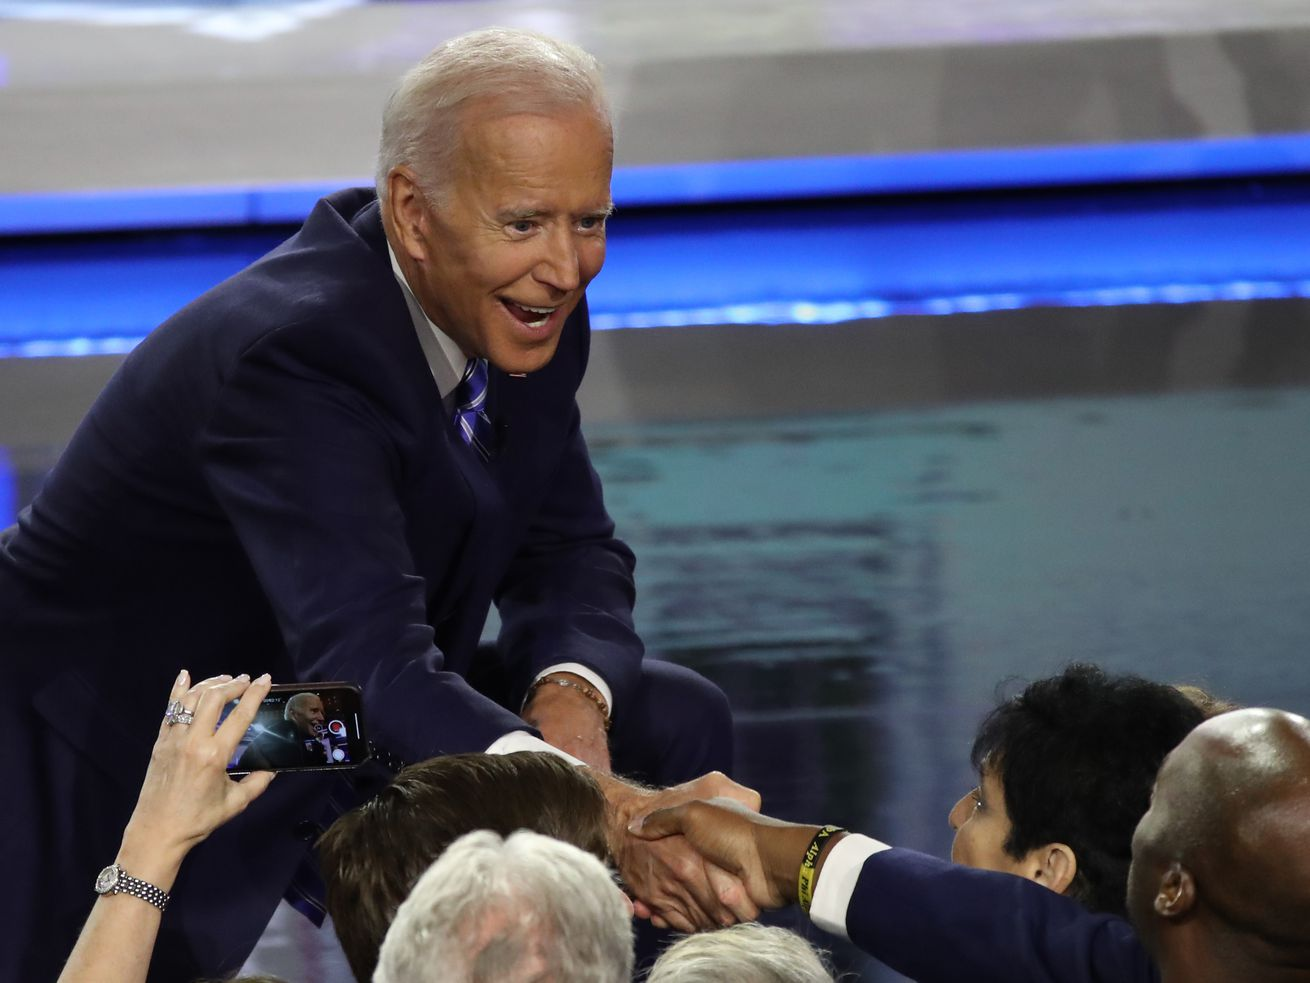 Former Vice President Joe Biden greets members of the audience after the second night of the first Democratic presidential debate on June 27, 2019 in Miami, Florida.